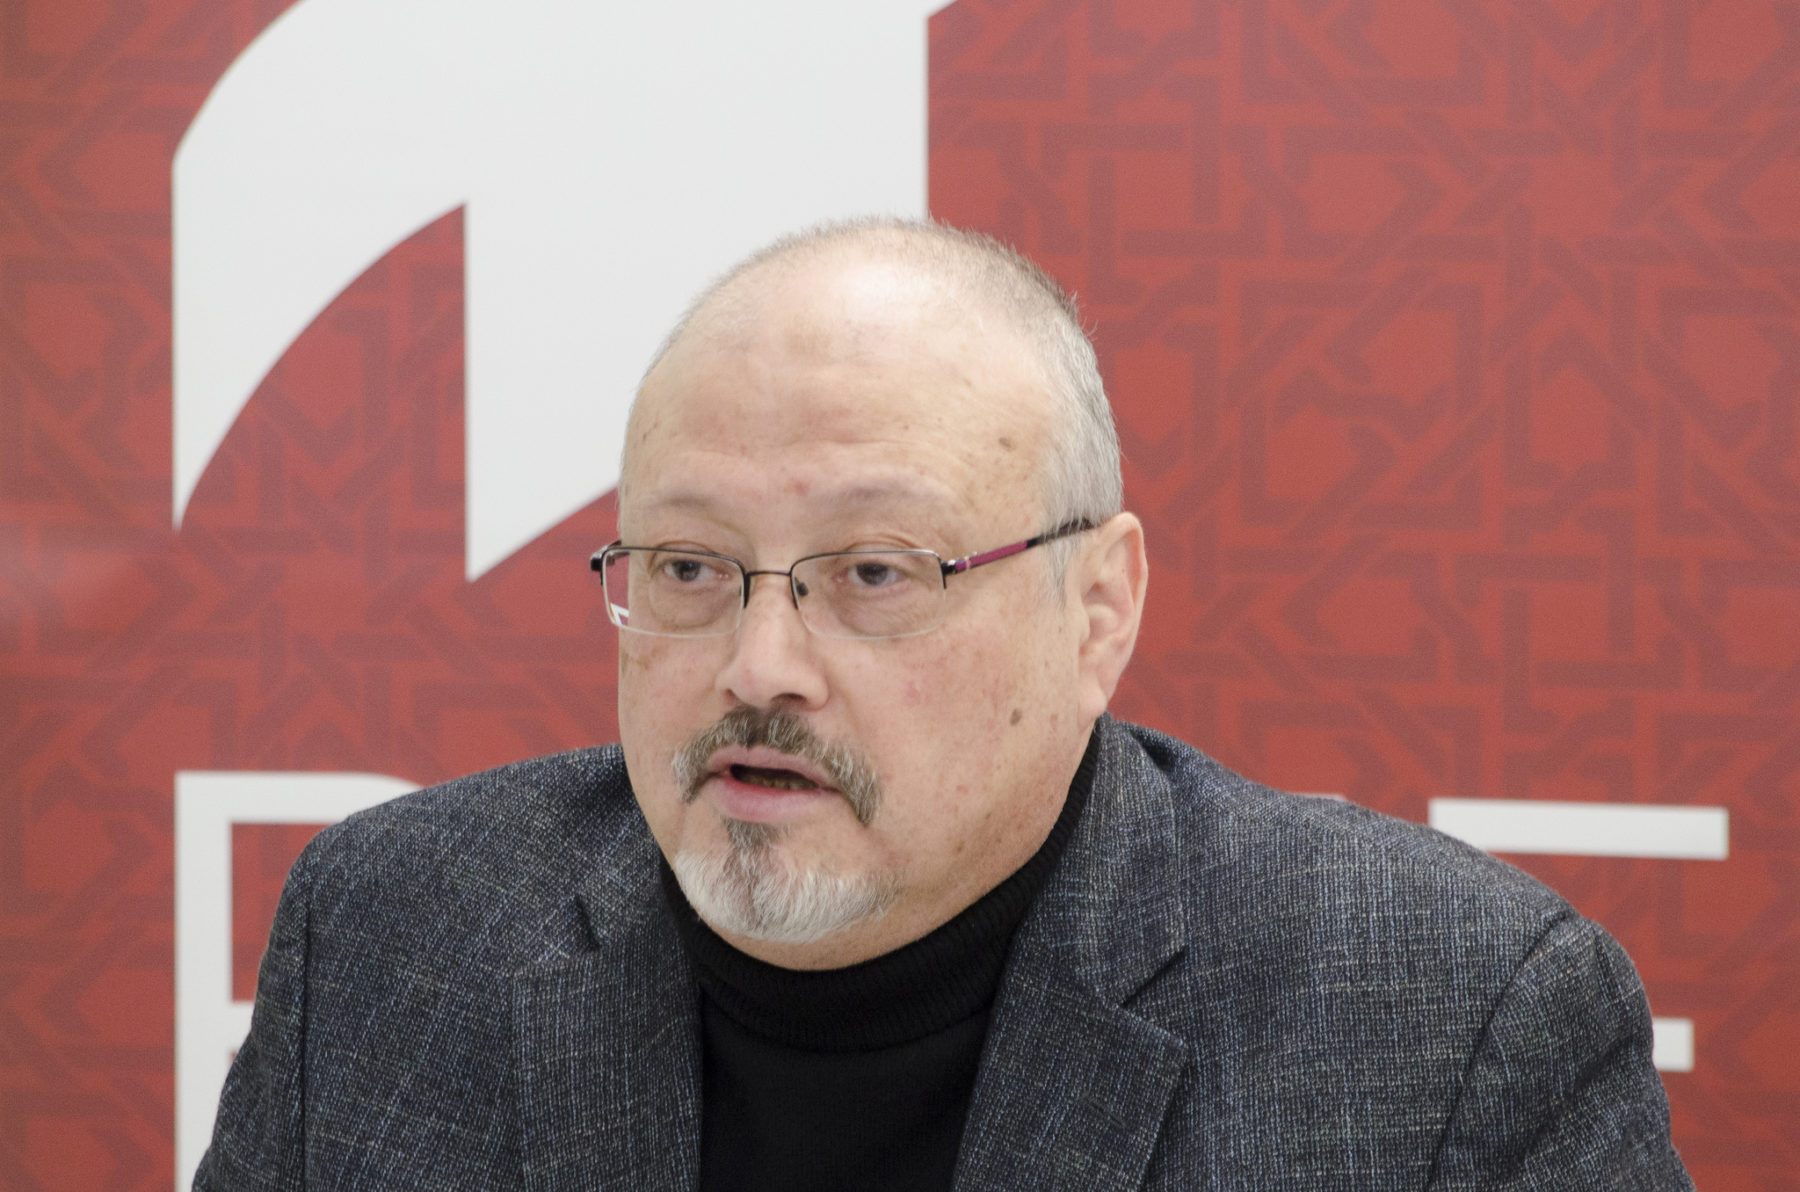 Is the Media Covering Up 'the Real Story' About Jamal Khashoggi?